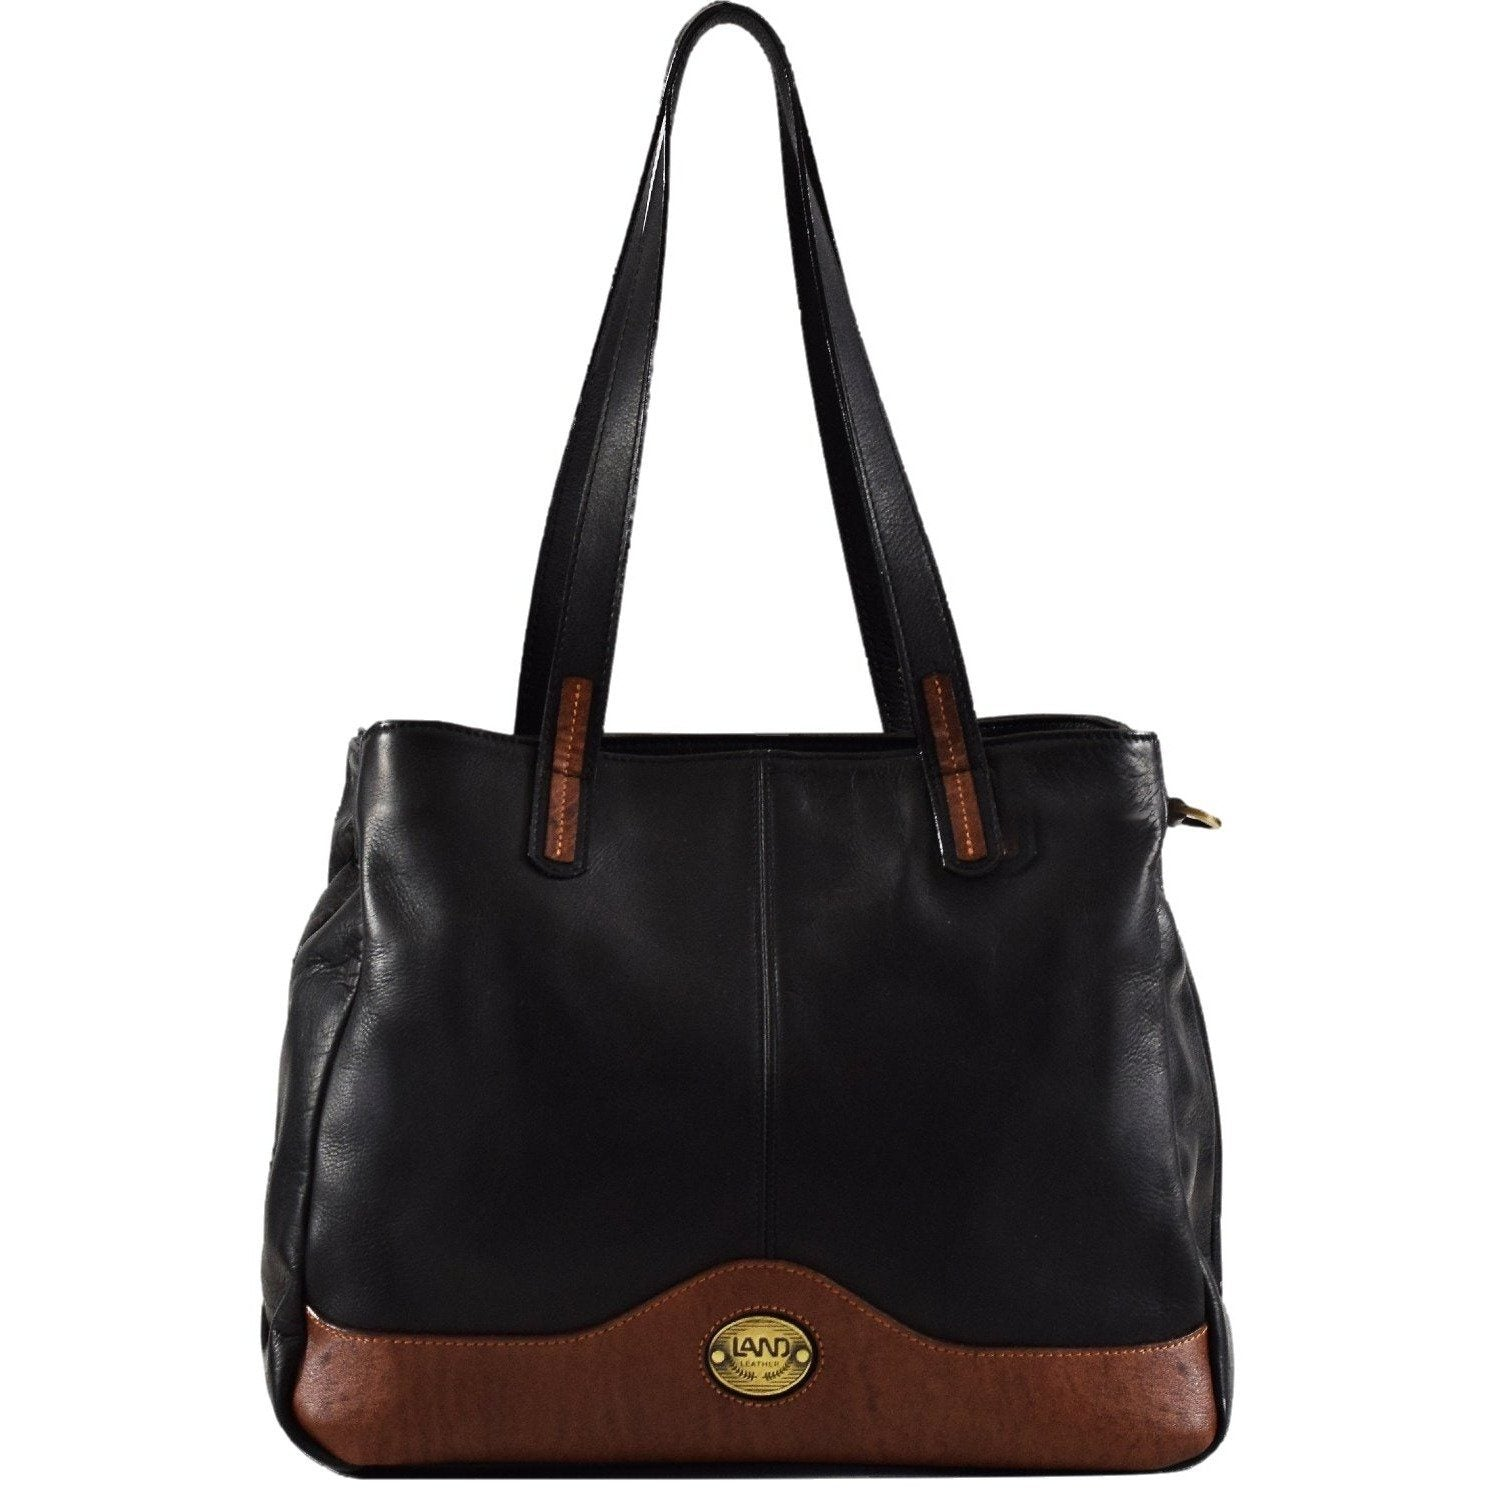 Santa Fe Double Trippers Bag, Handbag | LAND Leather